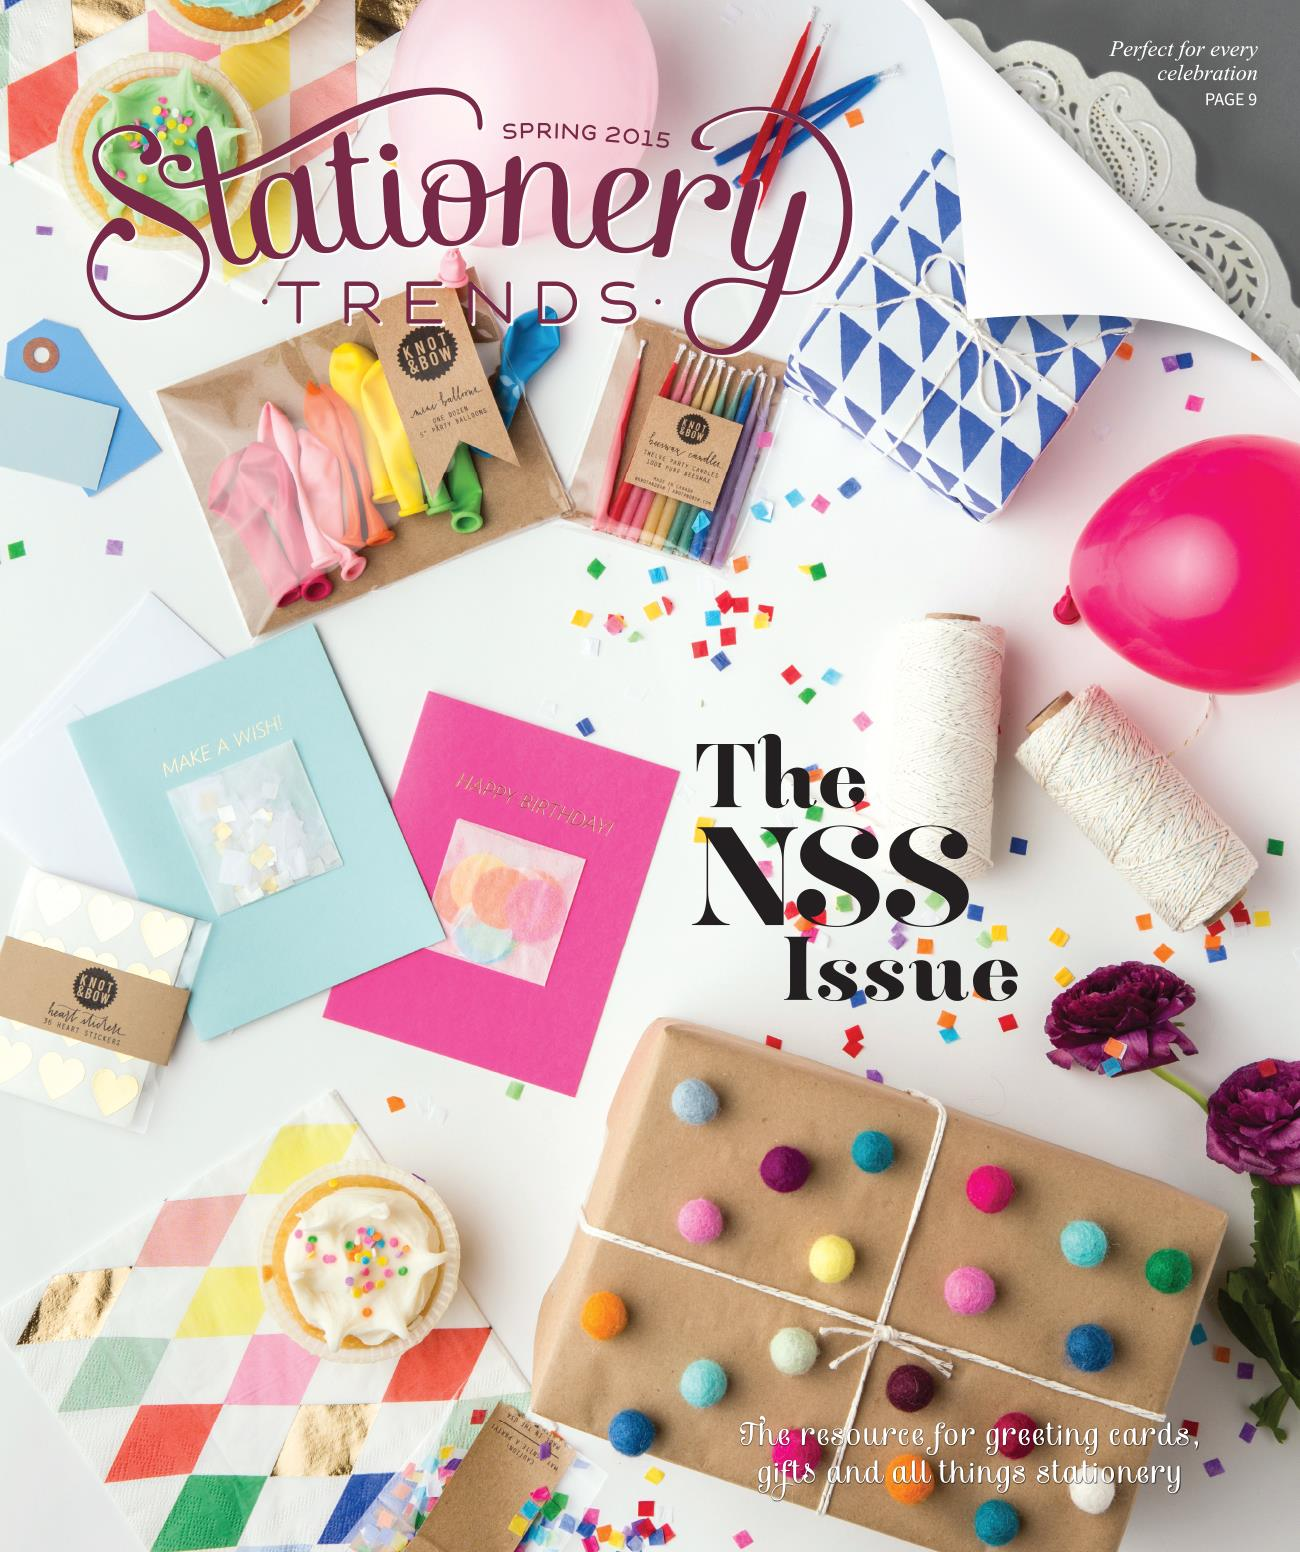 stationery-trends-cover.jpg